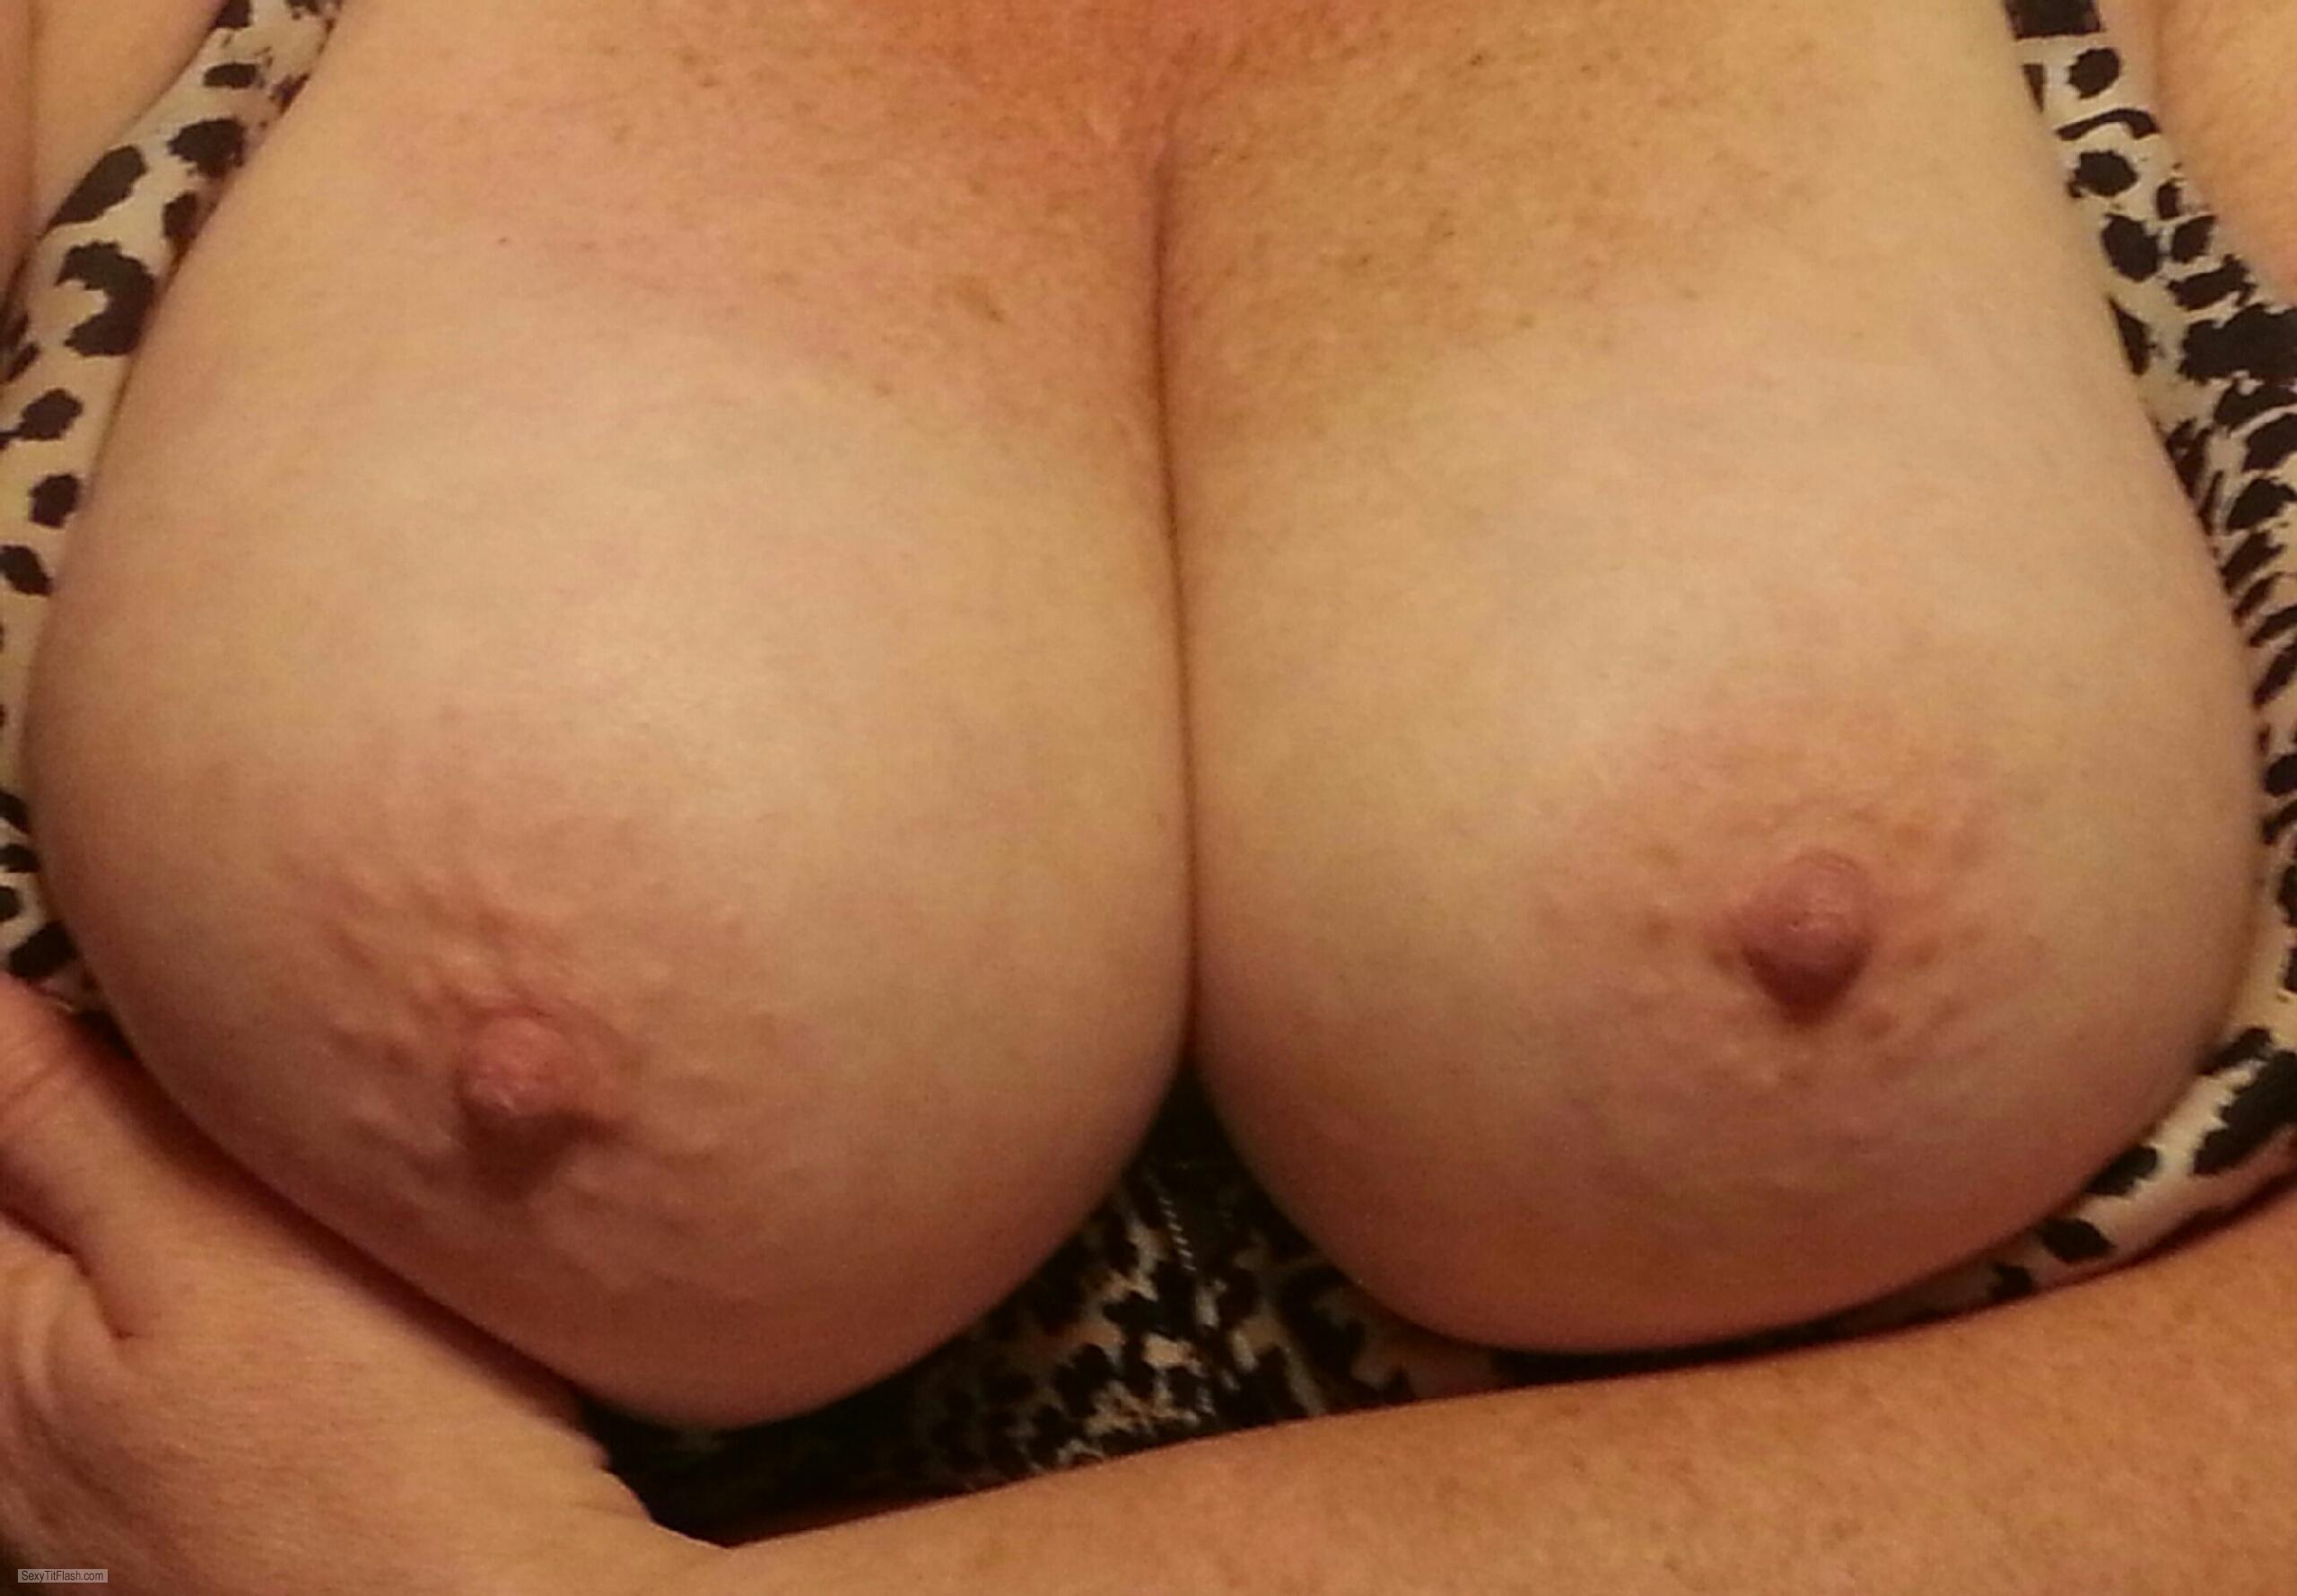 Tit Flash: My Big Tits - Angel from United Kingdom